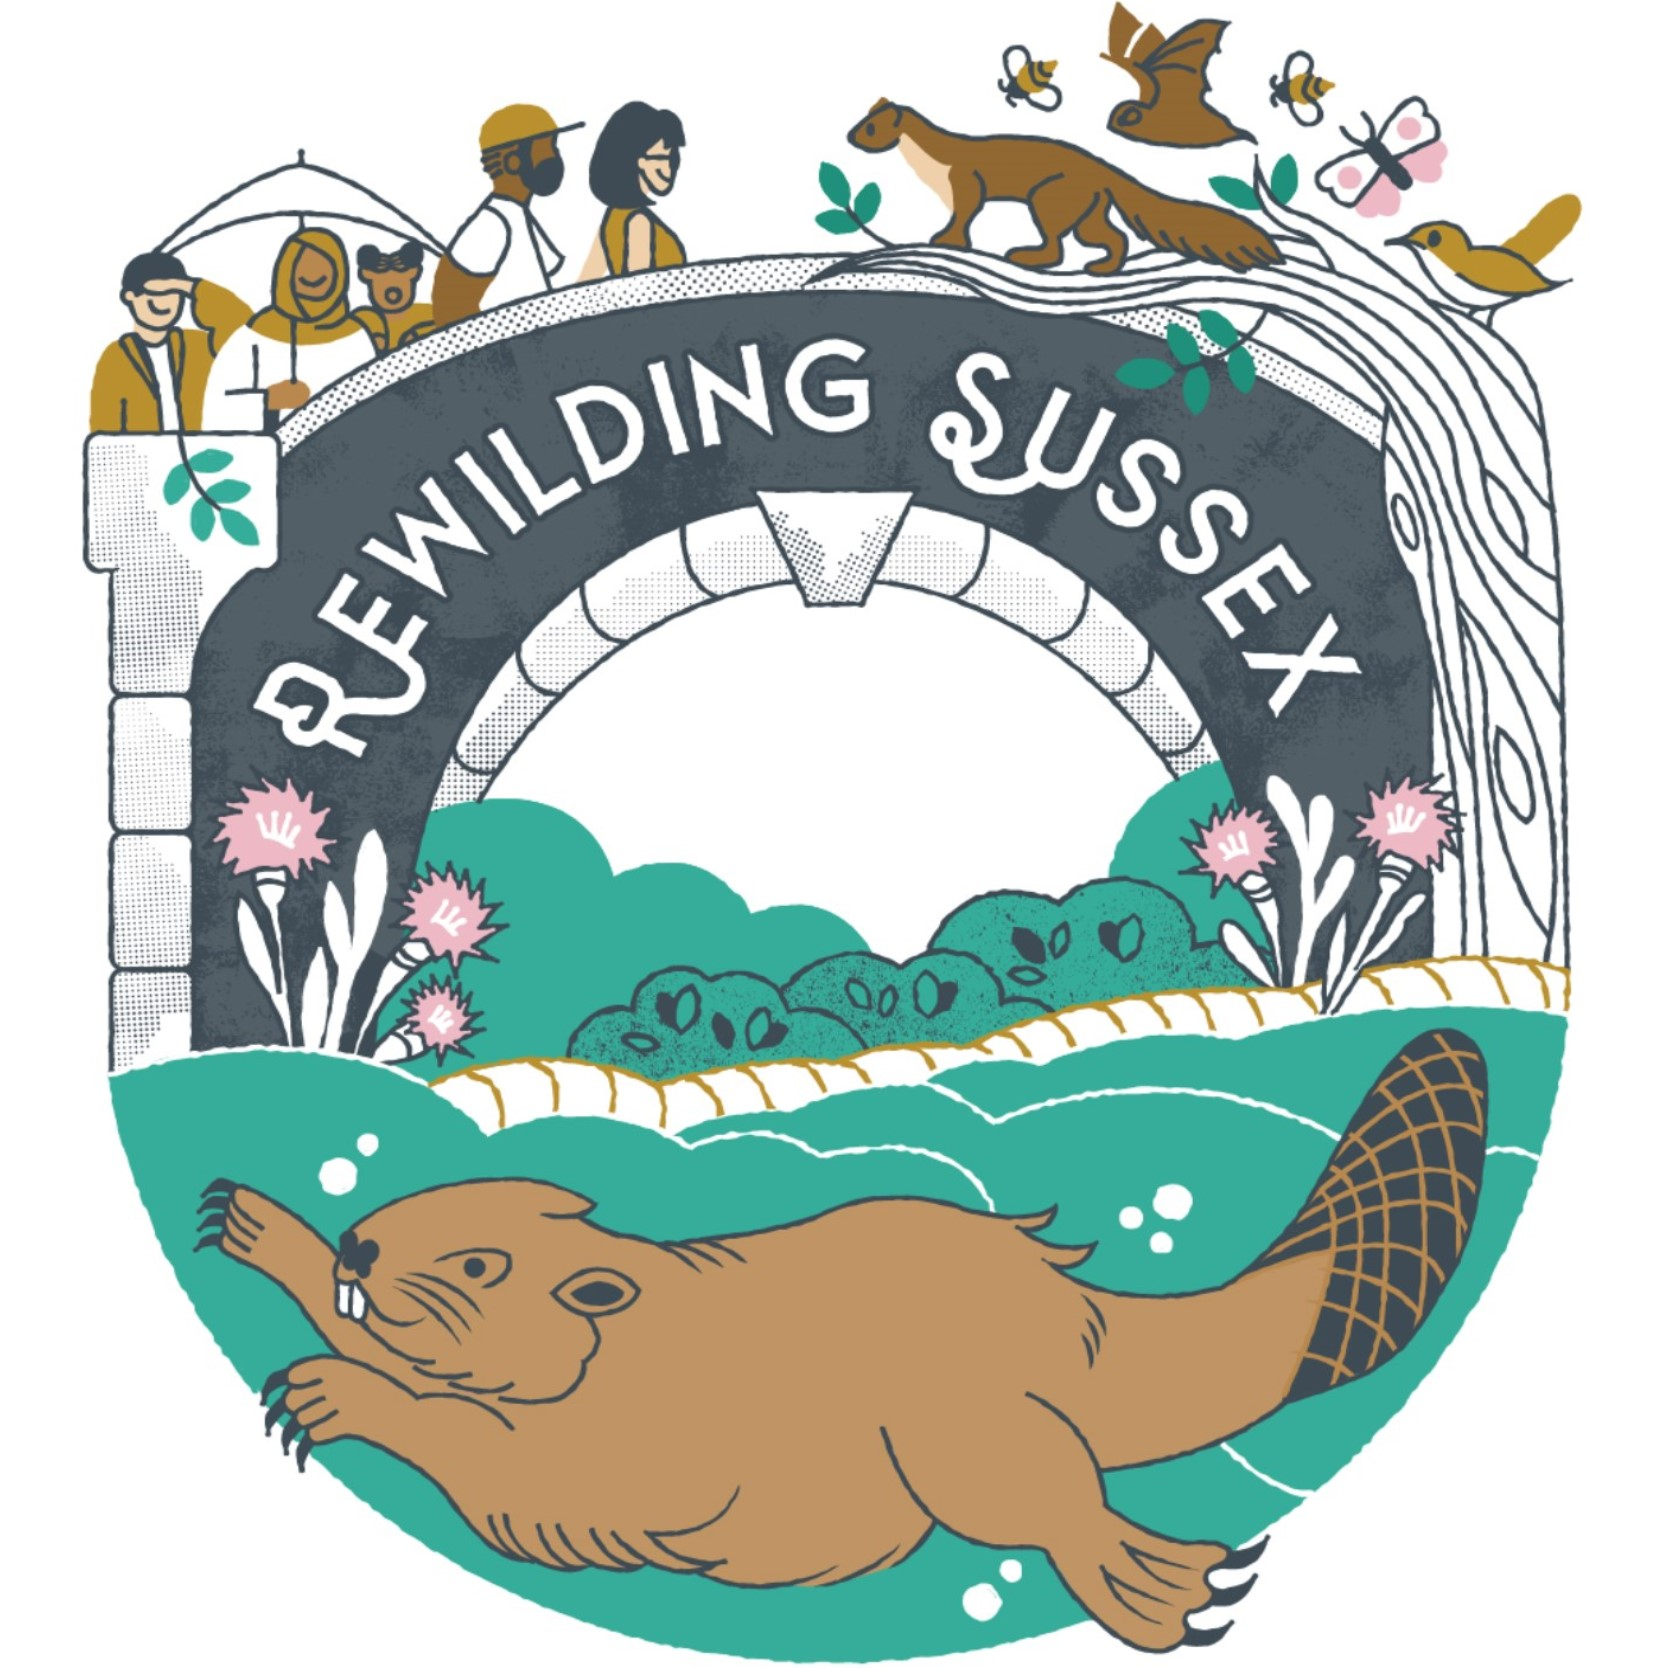 Rewilding Sussex